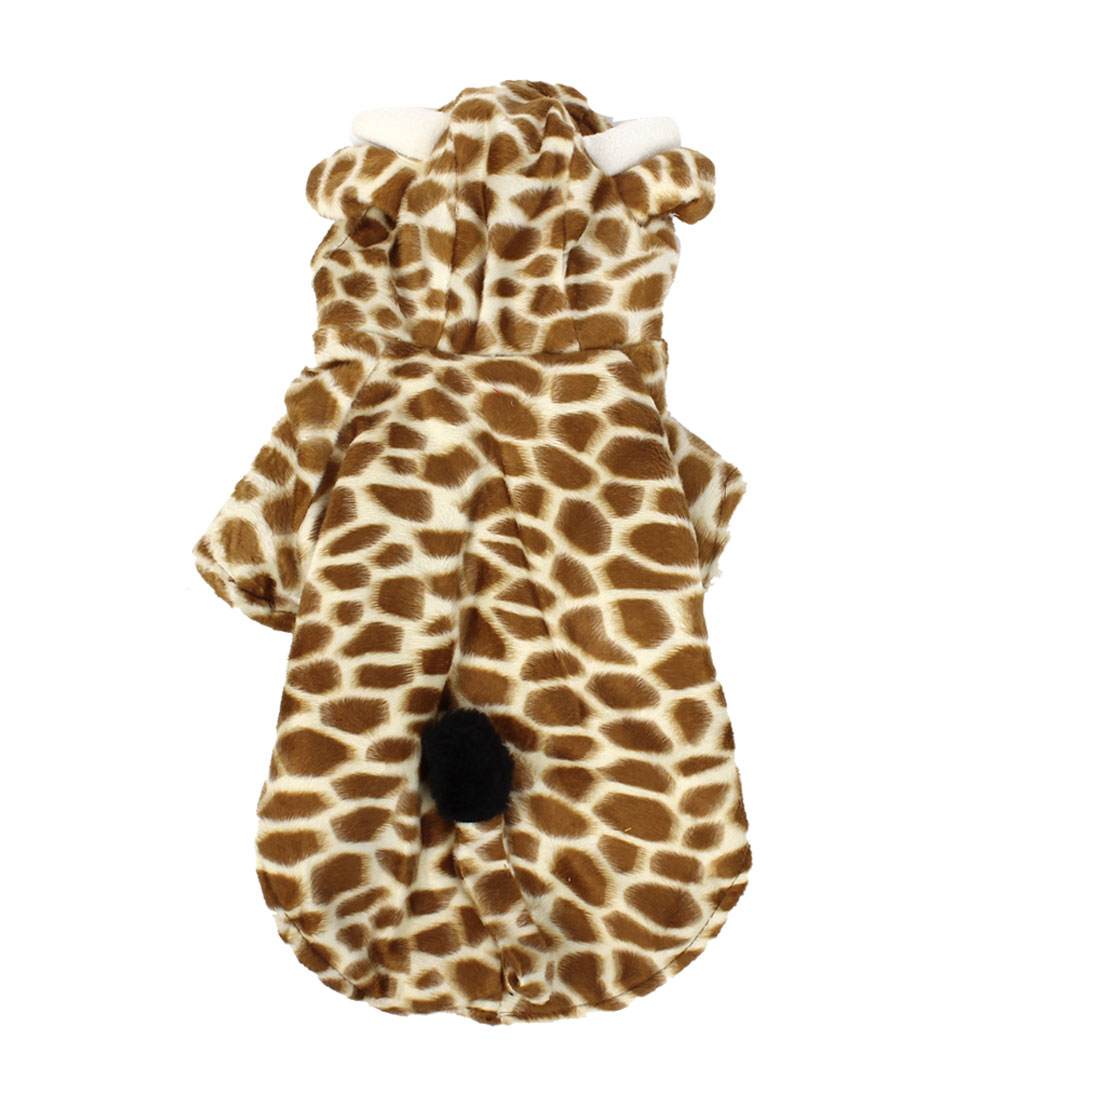 Winter Warm Giraffe Shape Hoodie Single Breasted Sleeved Pet Dog Doggy Apparel Coat Clothes Coffee Color Beige M